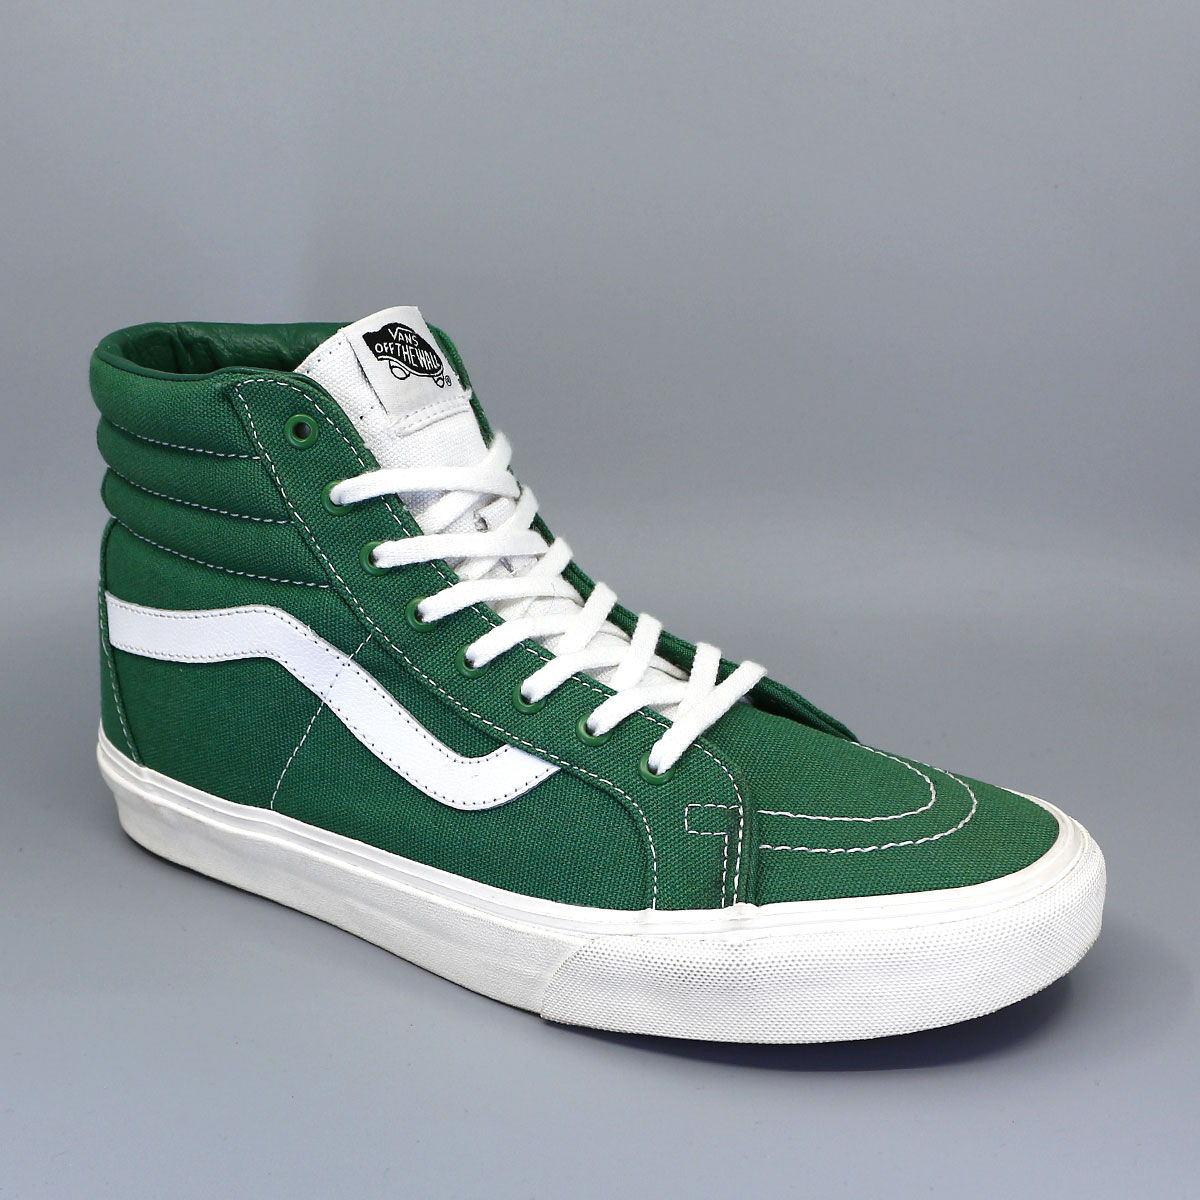 Classic Tumble Old Skool | Shop Classic Shoes in 2020